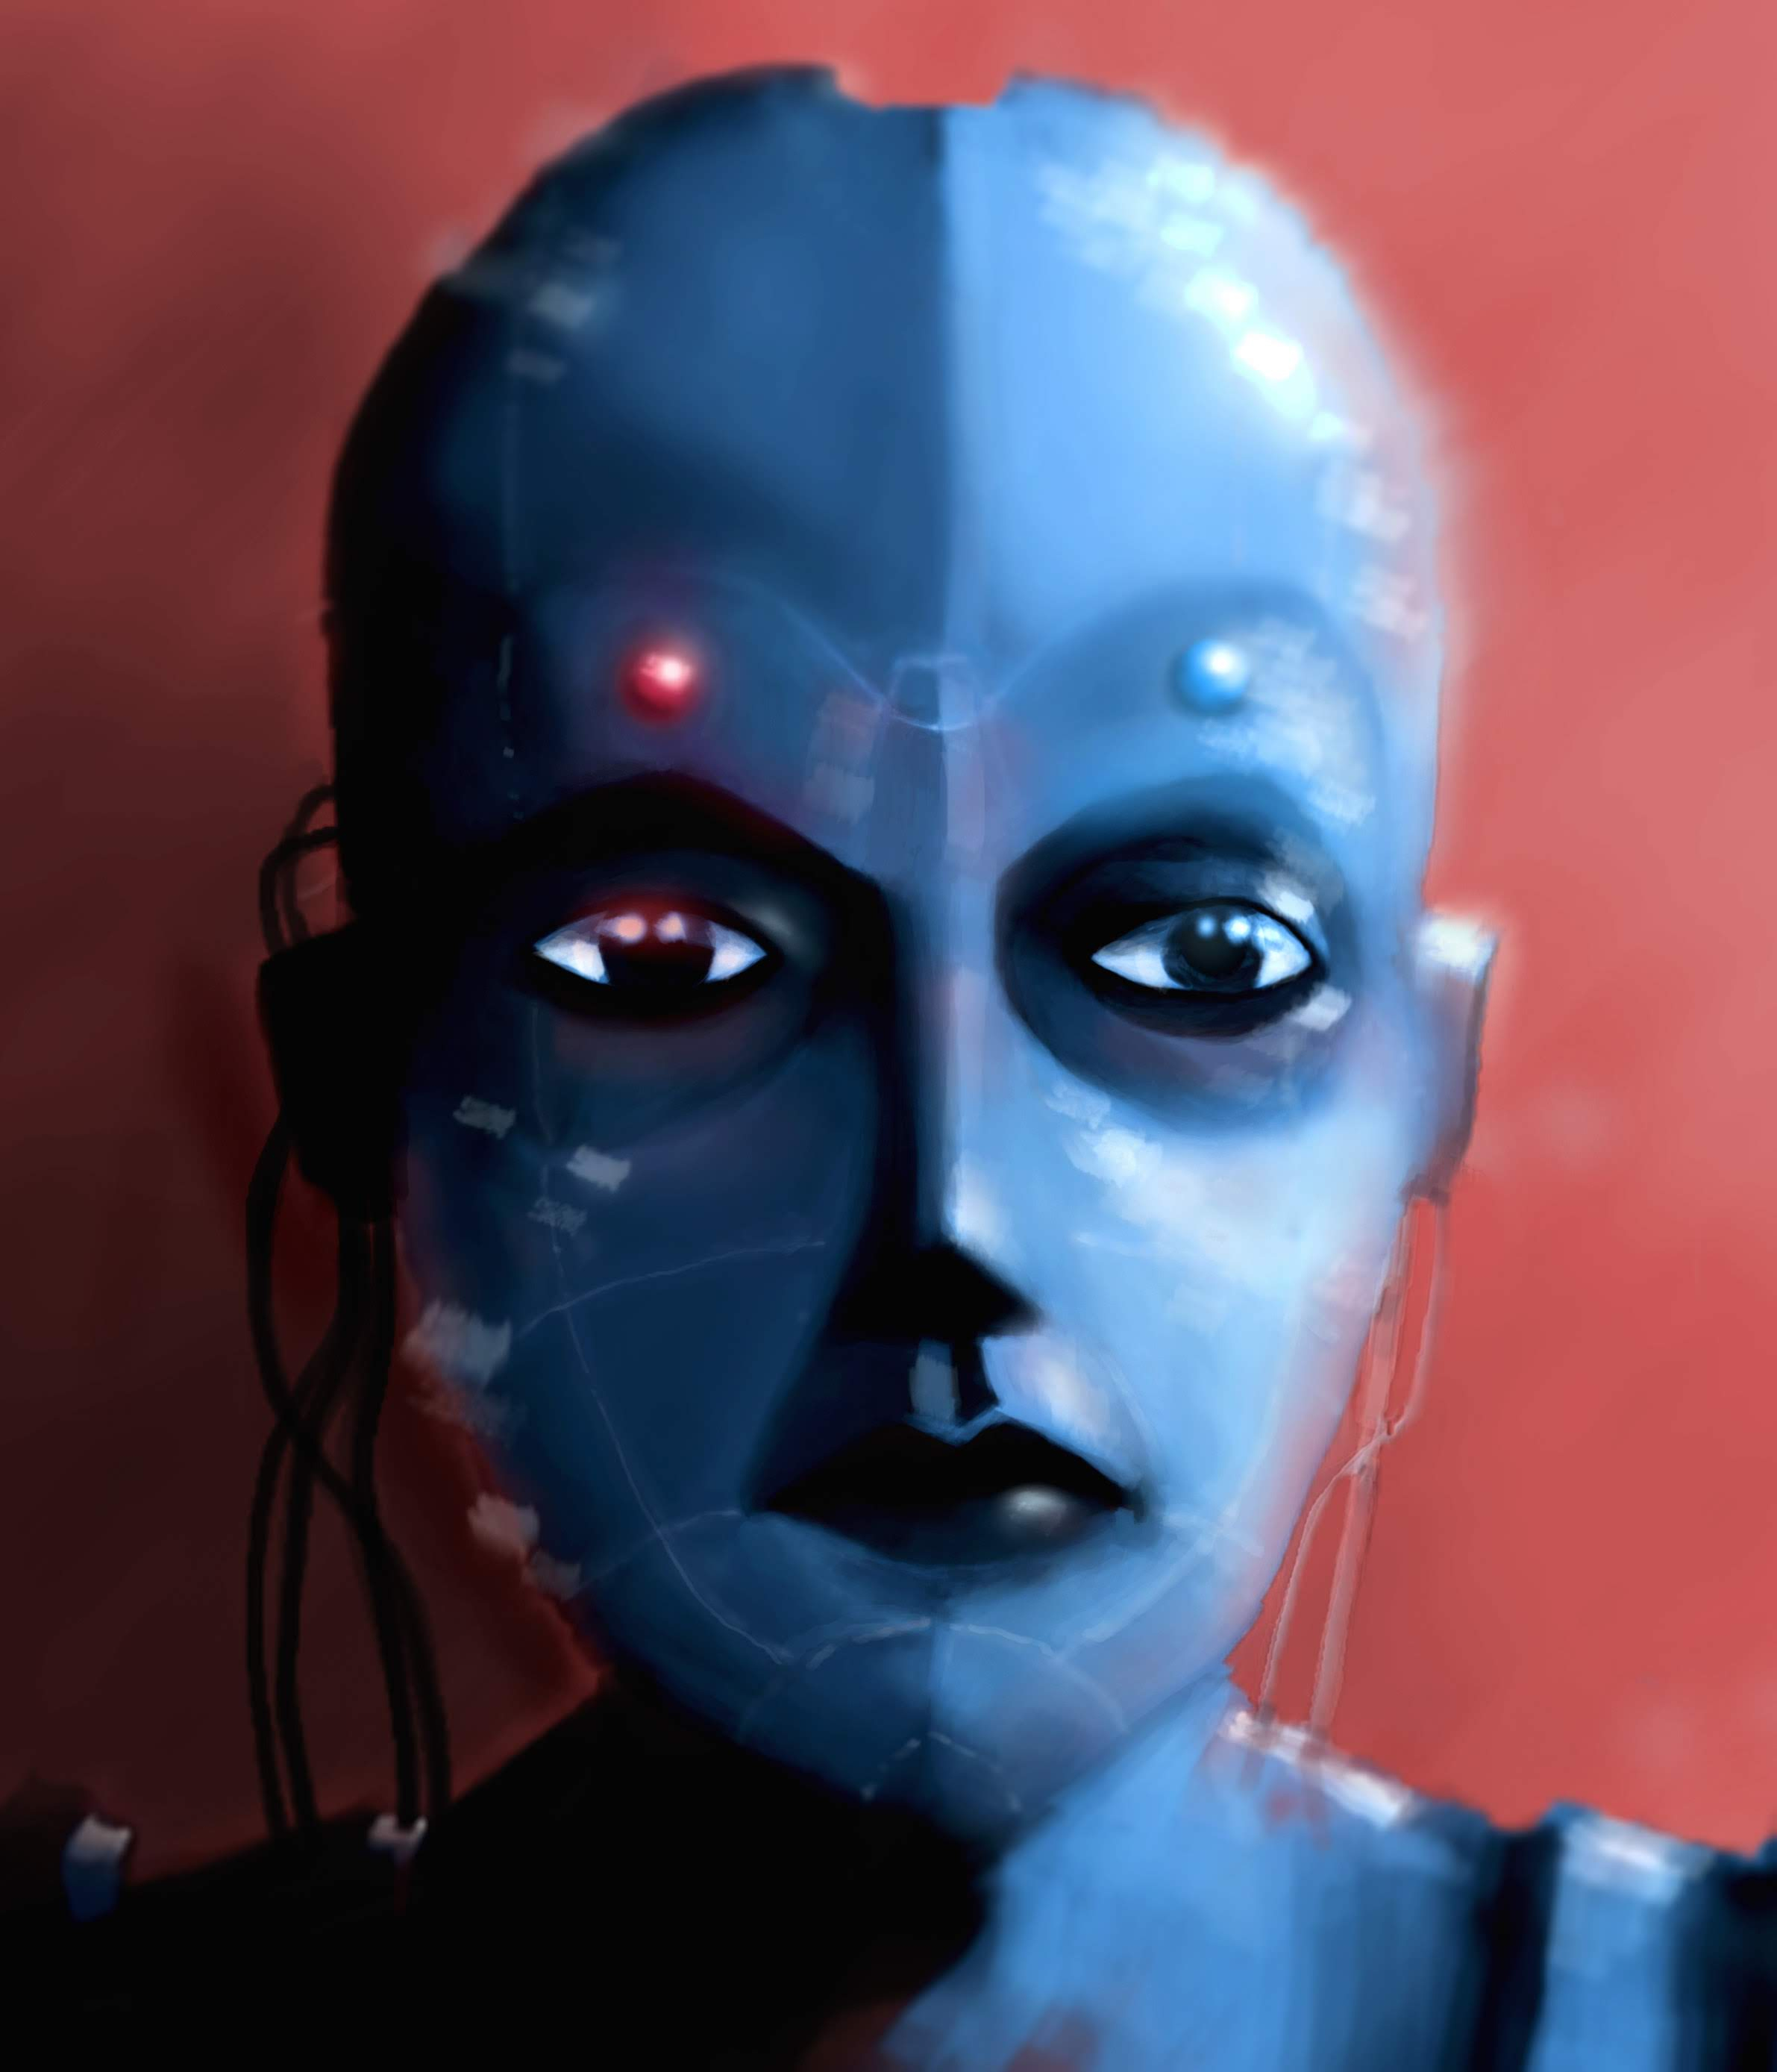 The Robot Girl-illustration